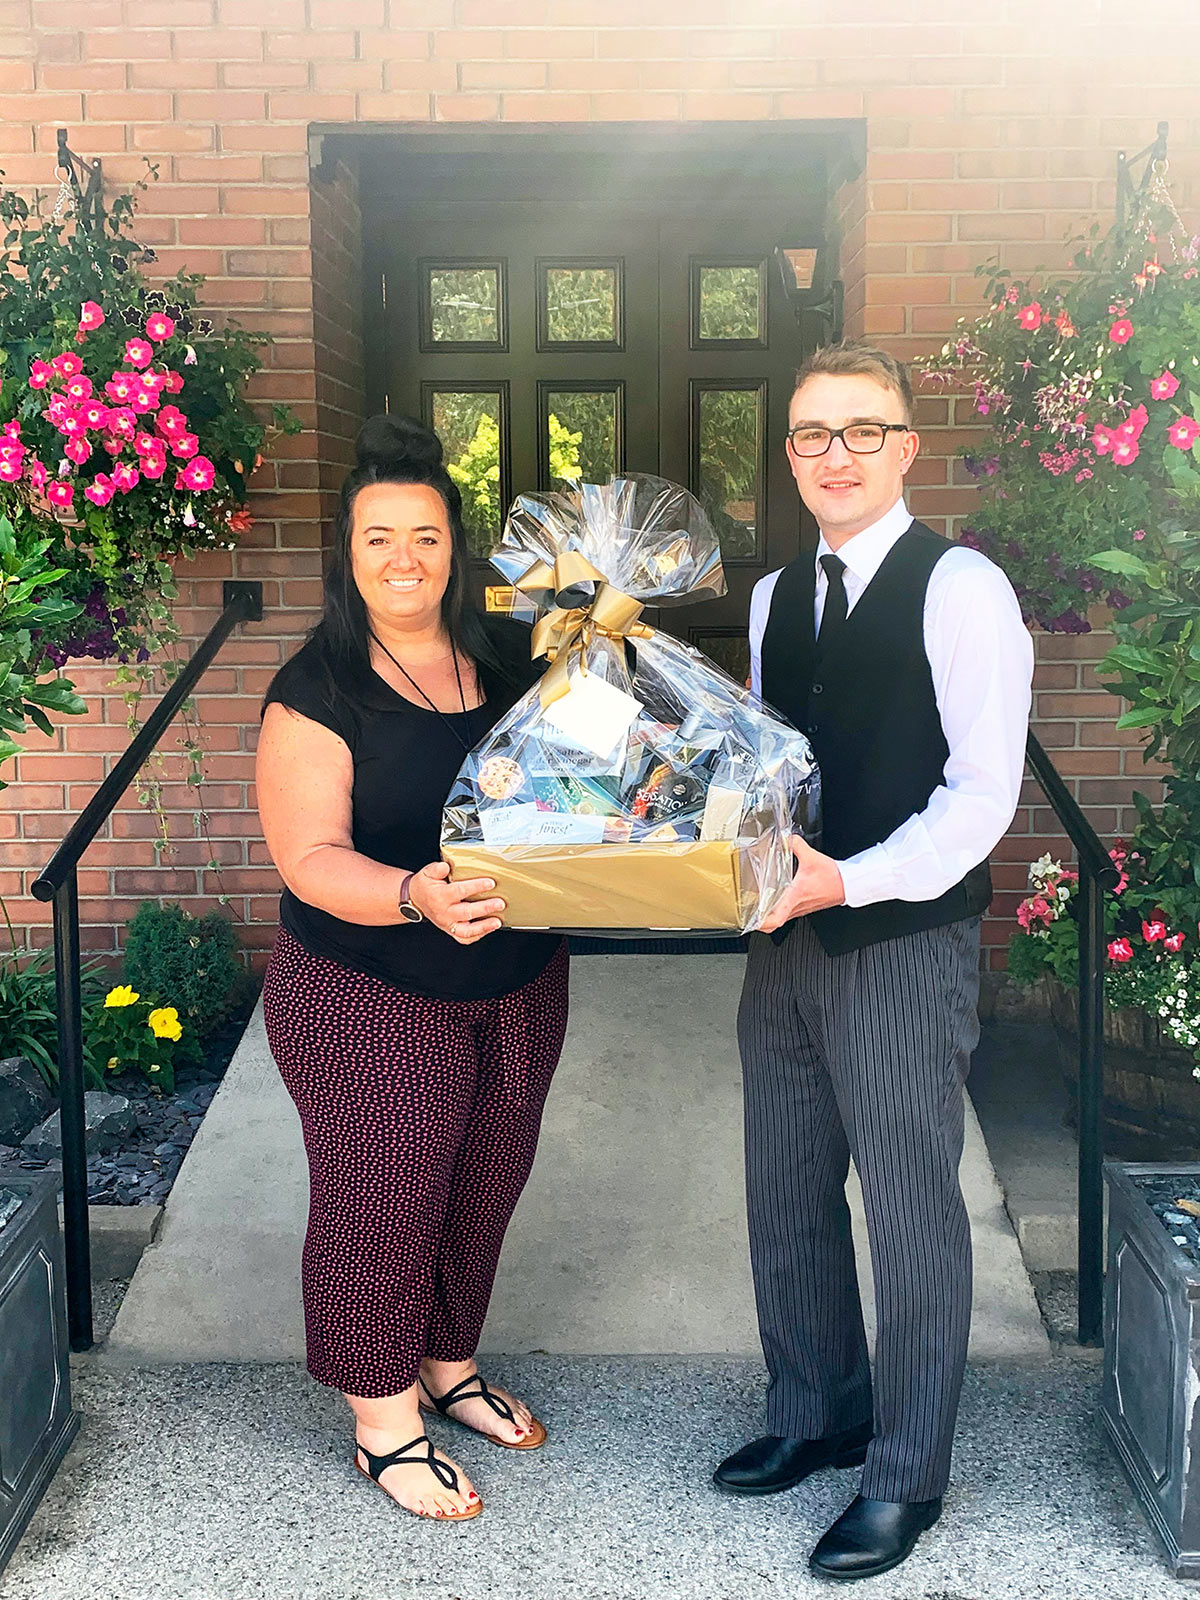 Olly presents a hamper to Beckingham School (18th July 2019)